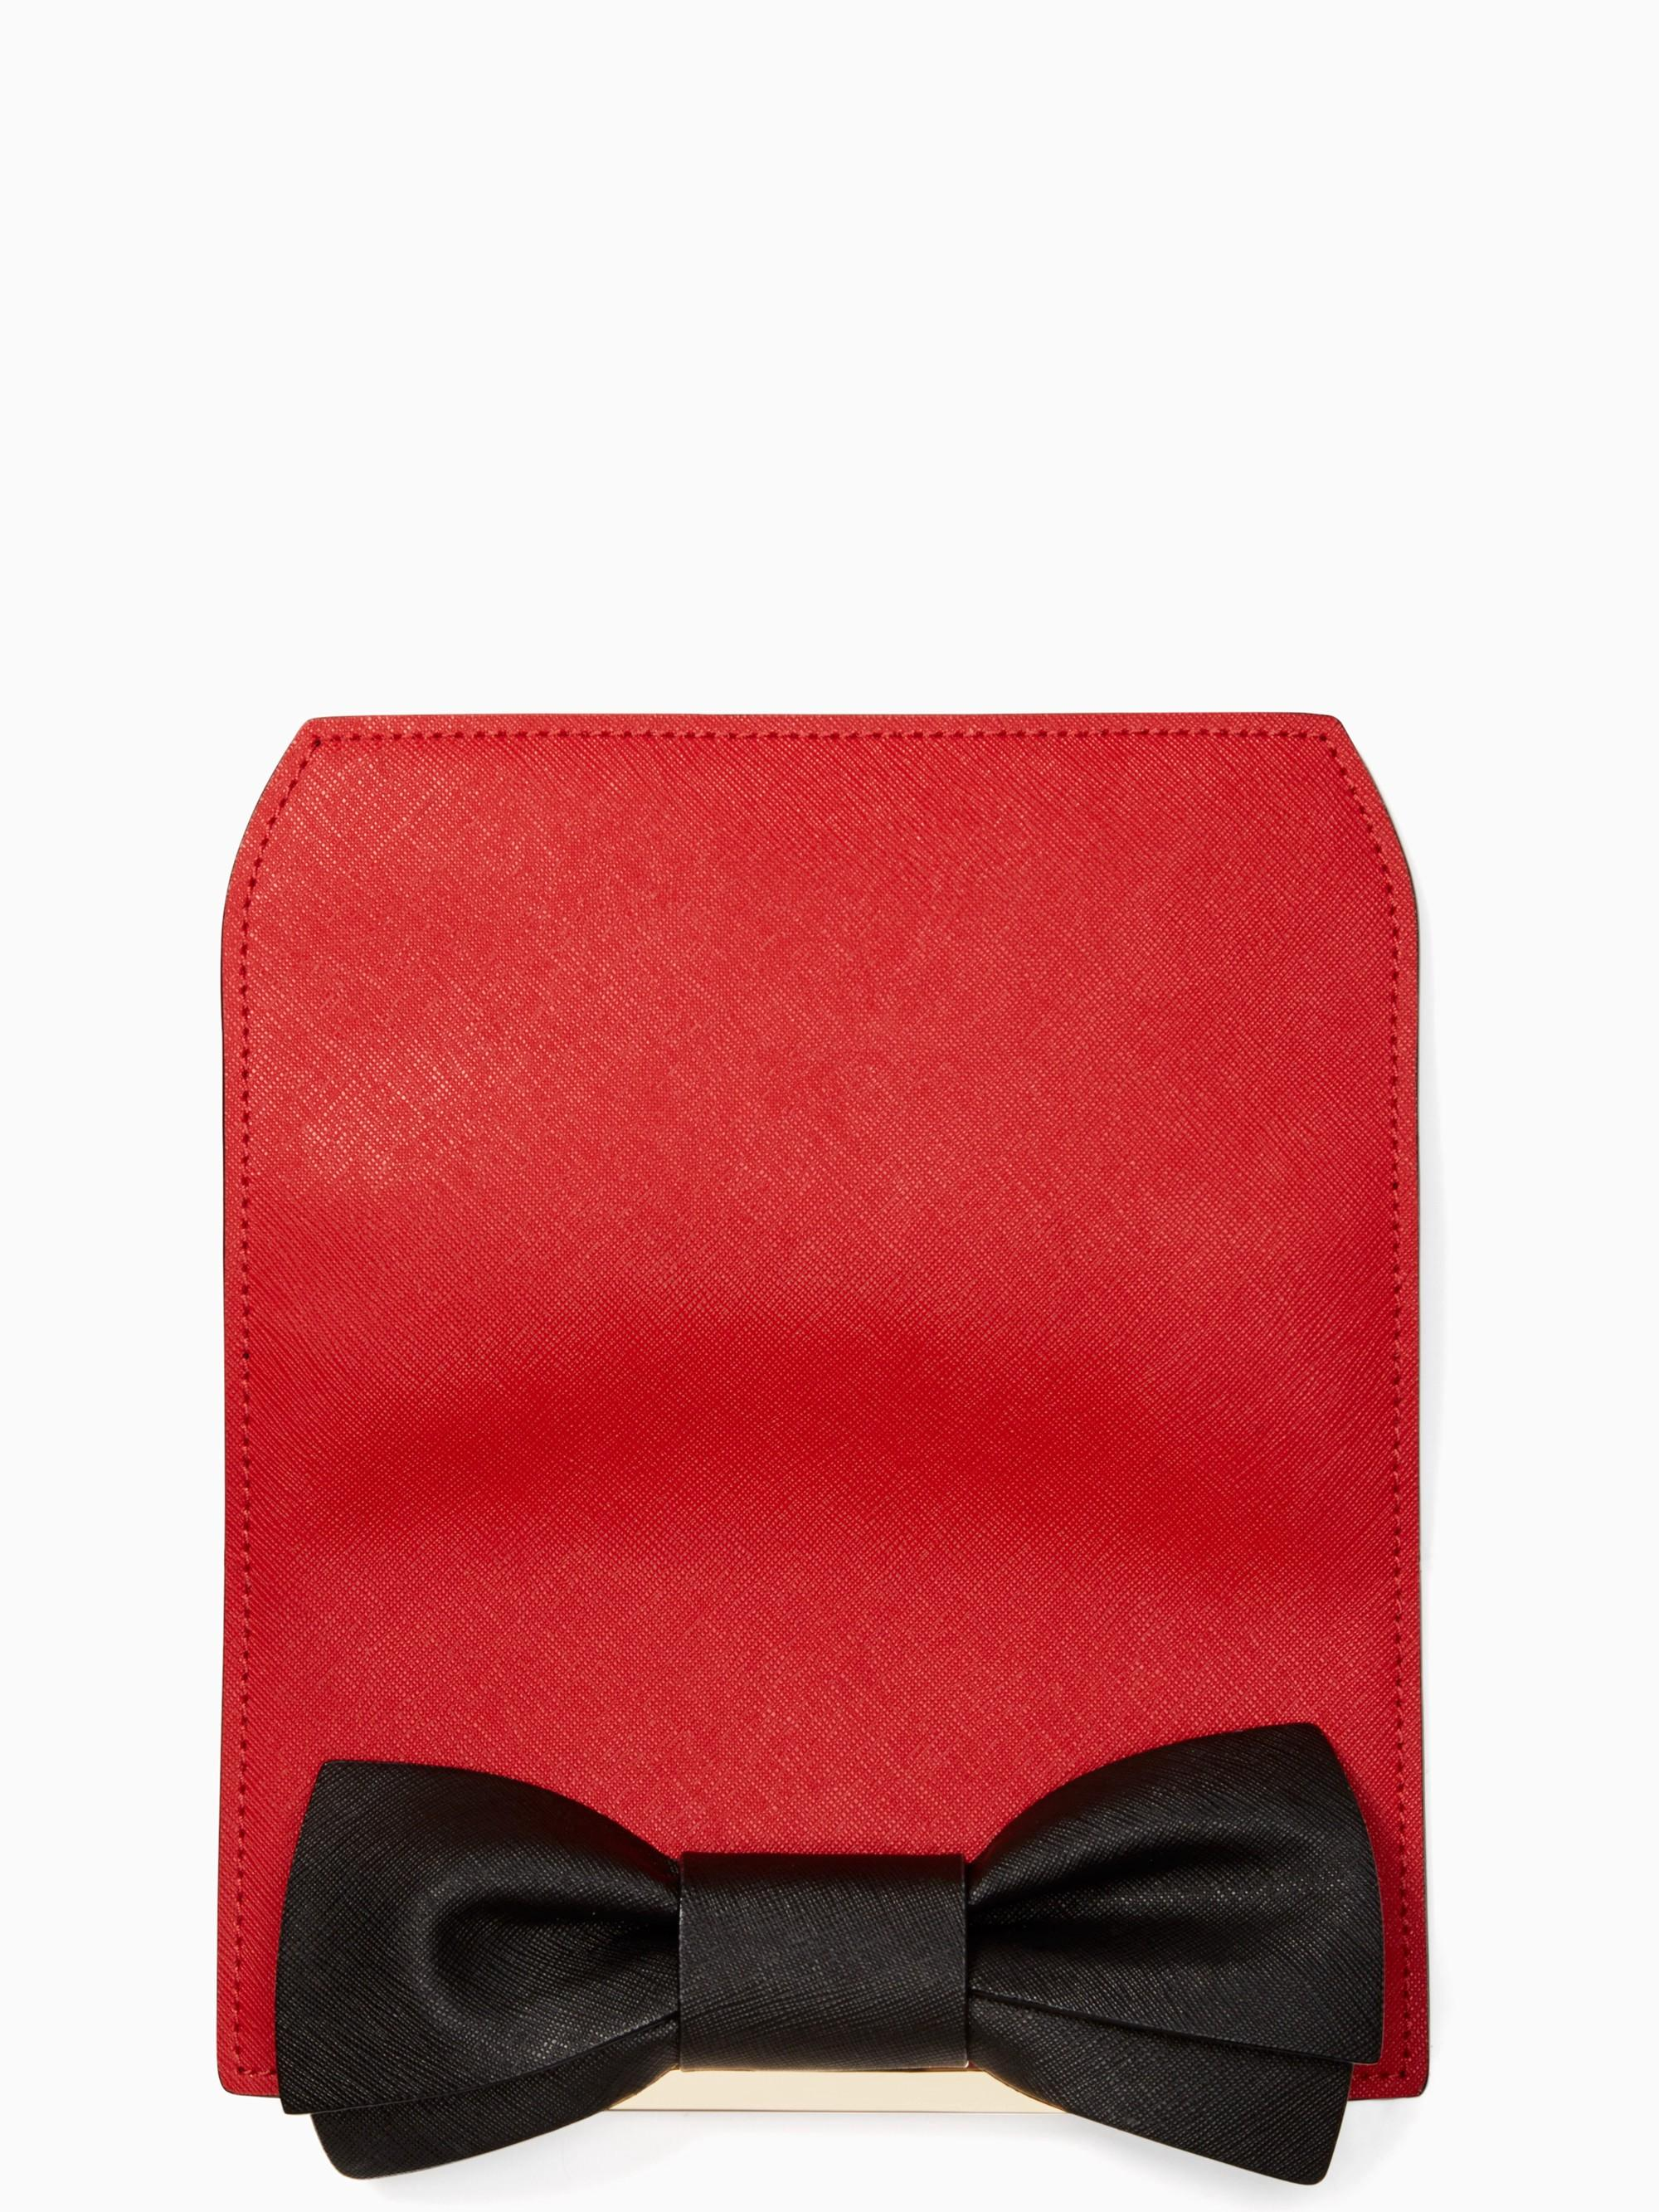 Kate Spade Make It Mine Bow Flap In Red Carpet/black